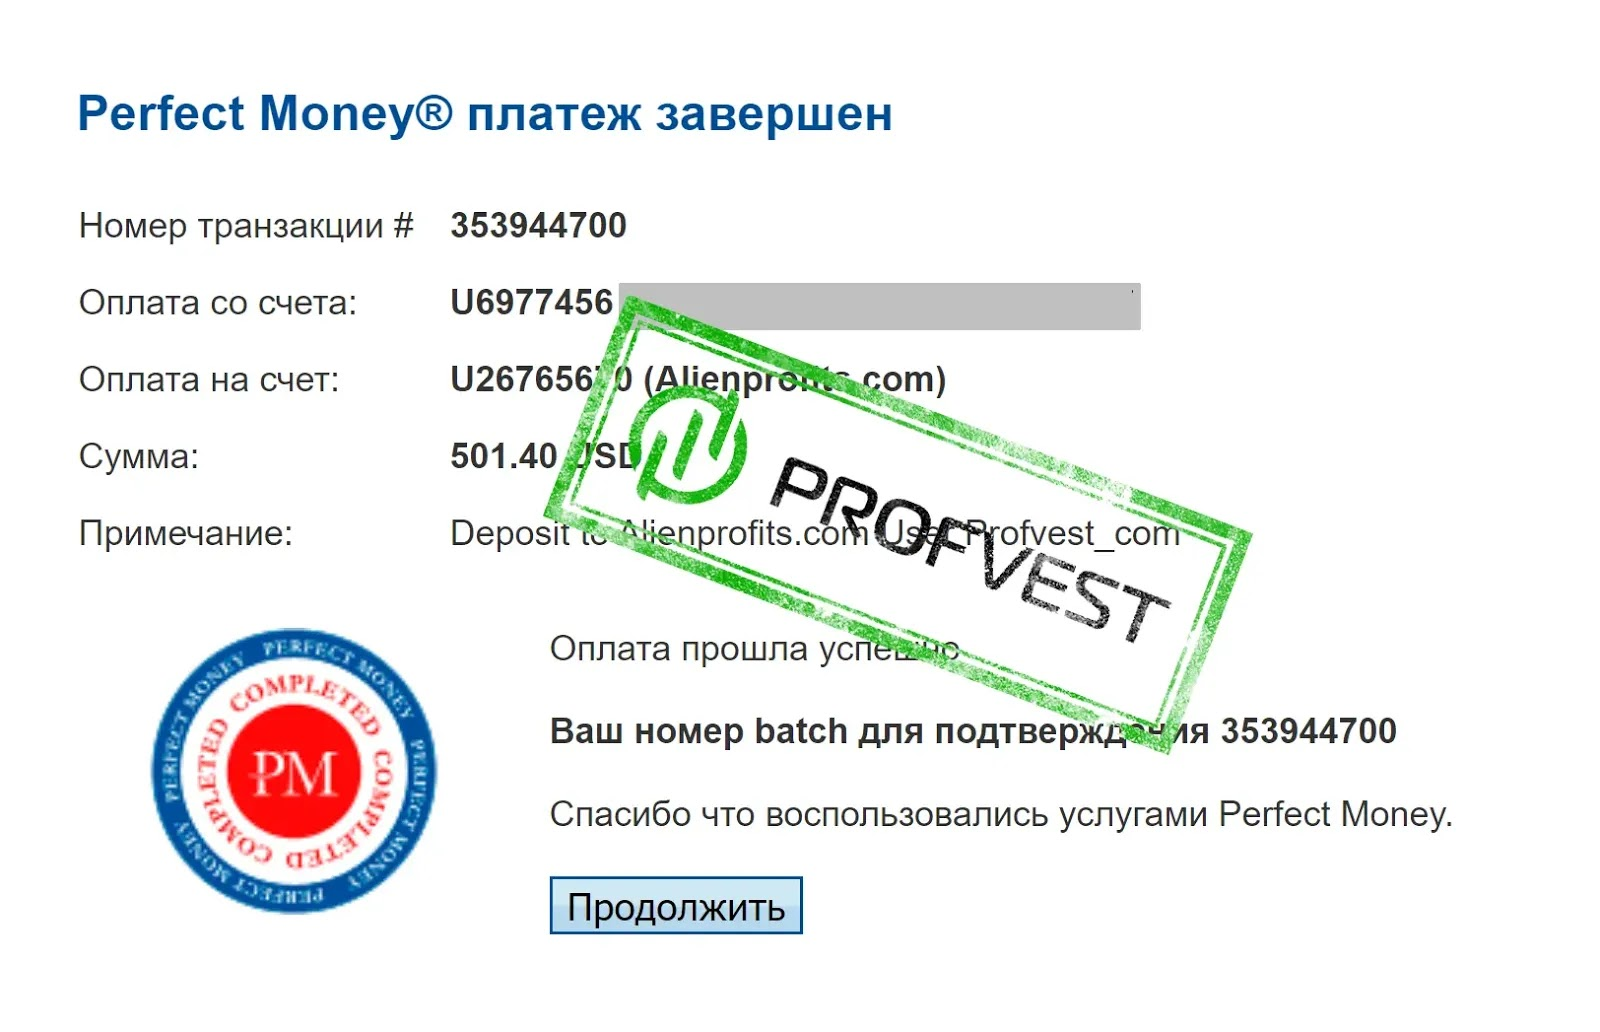 Депозит в AlienProfits